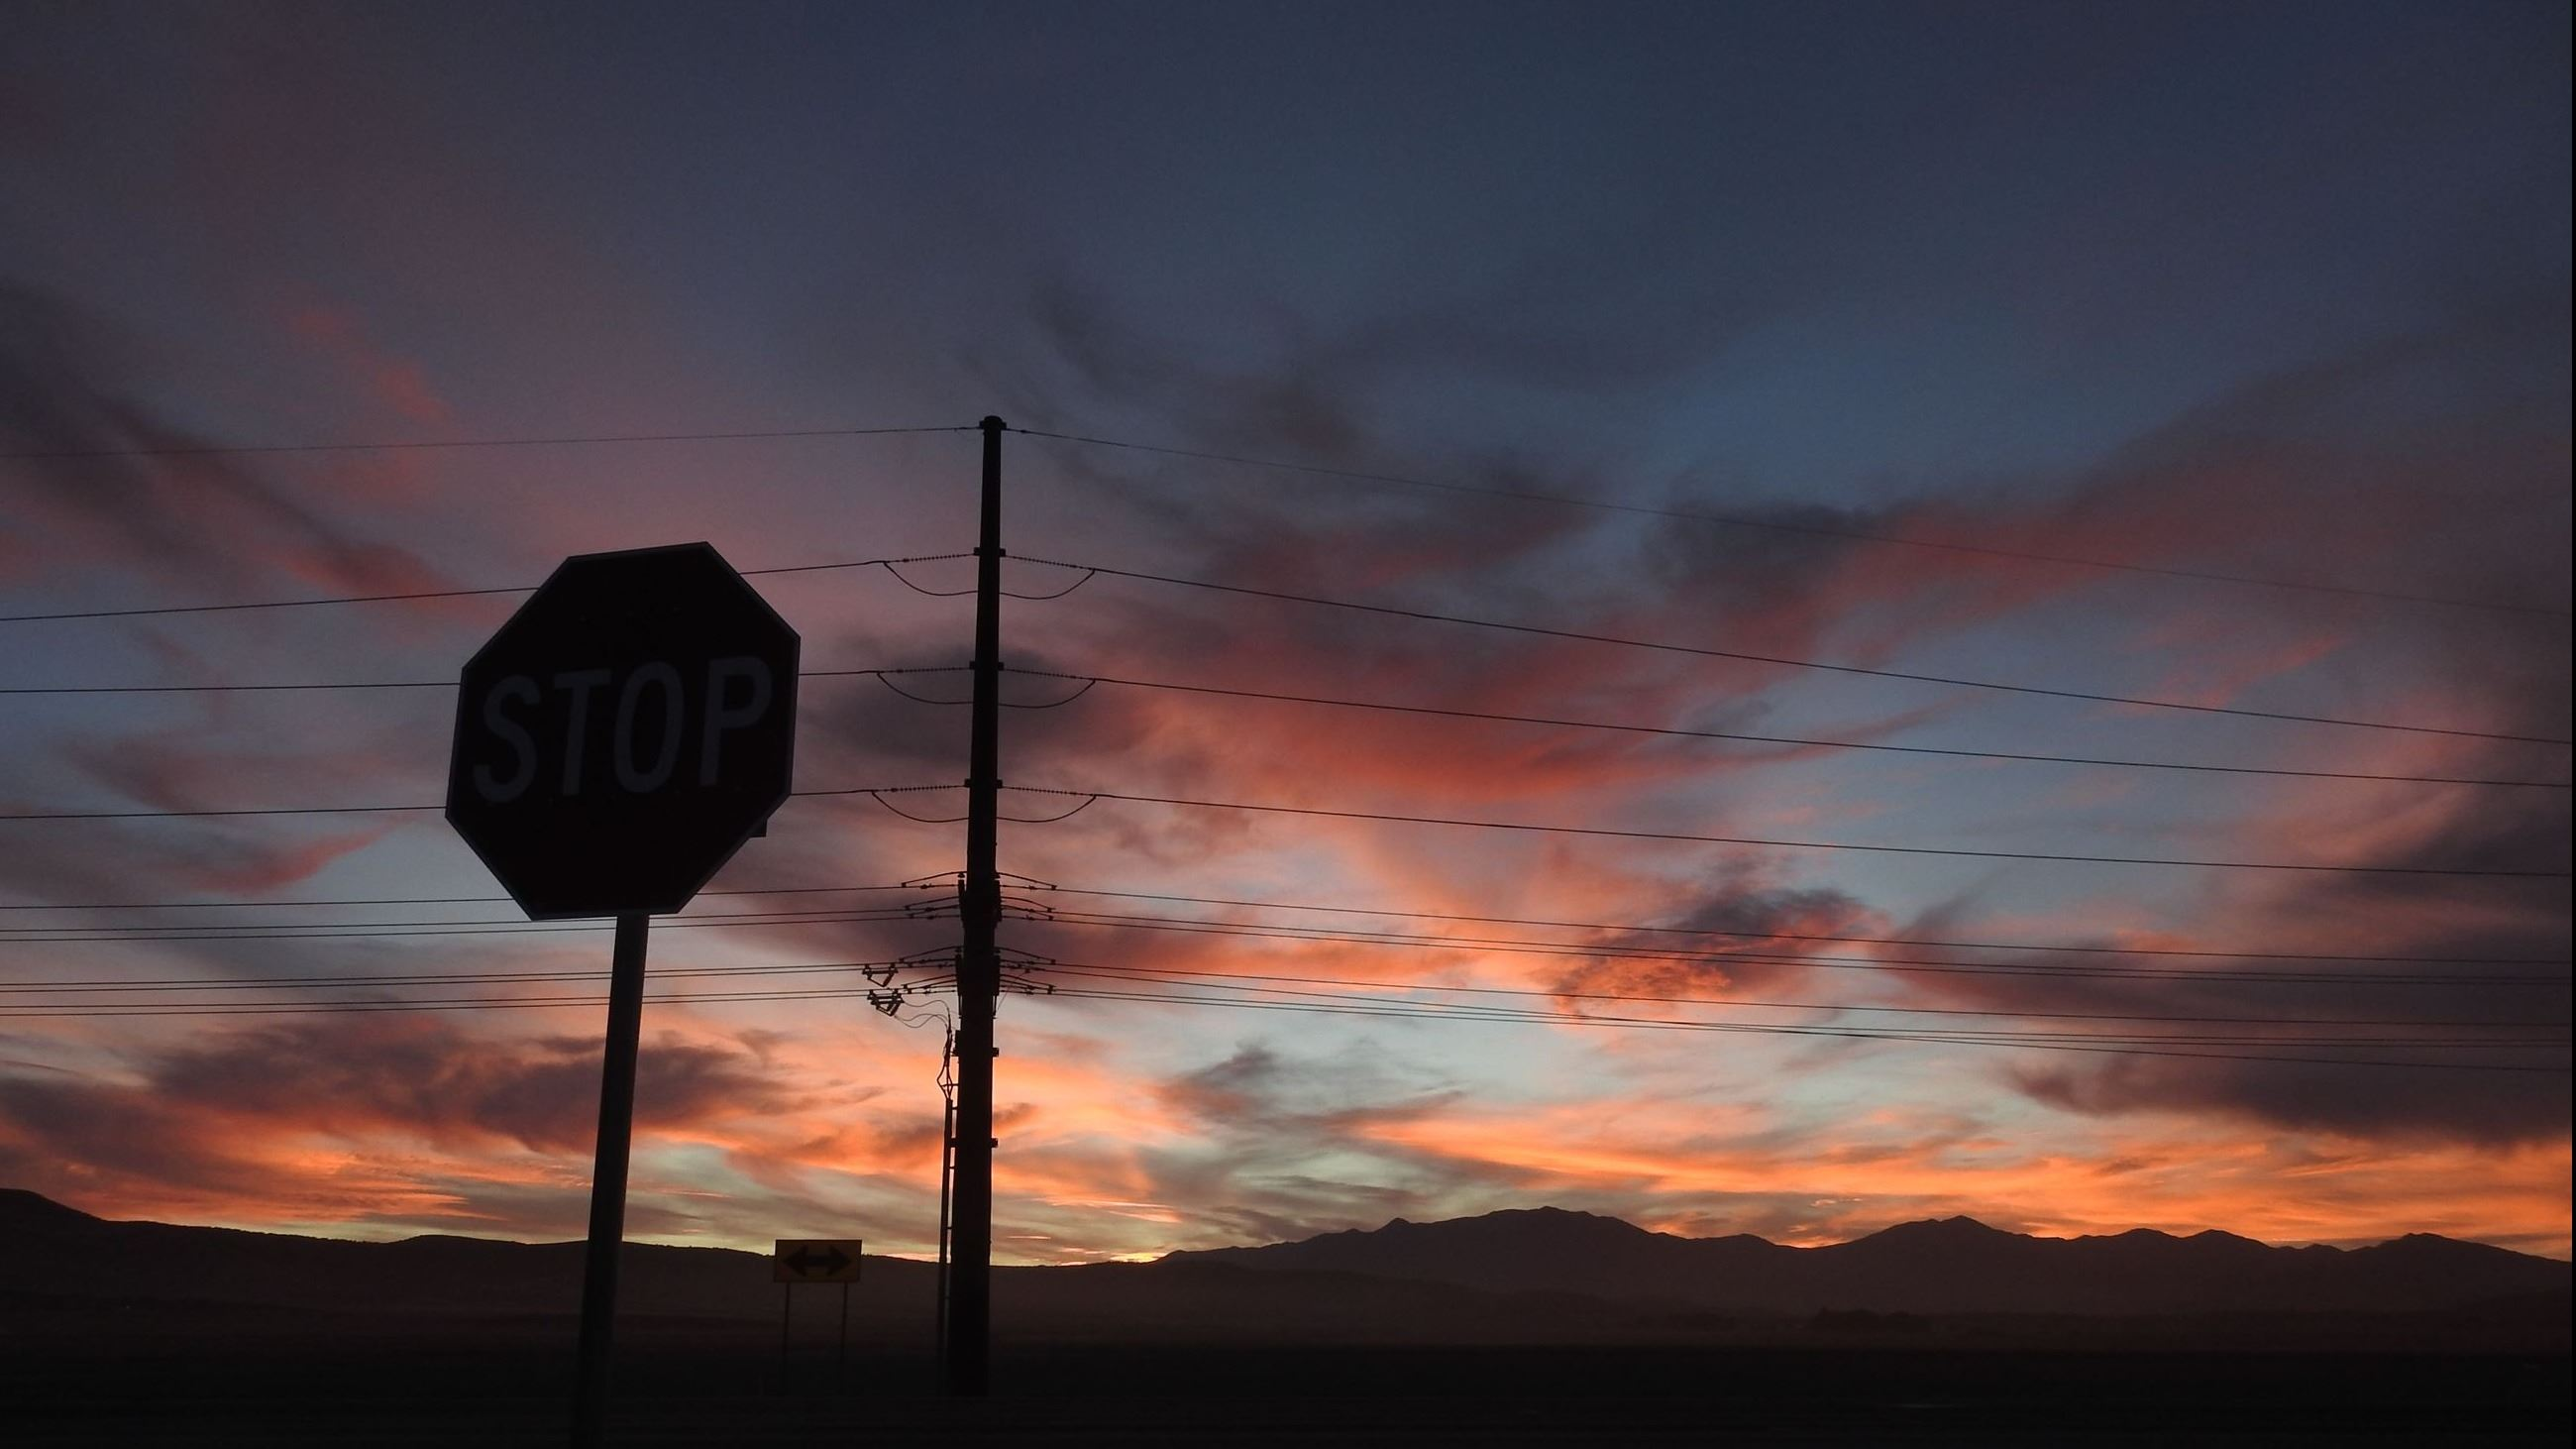 Sunset on behind the stop sign PC: Ann Carter